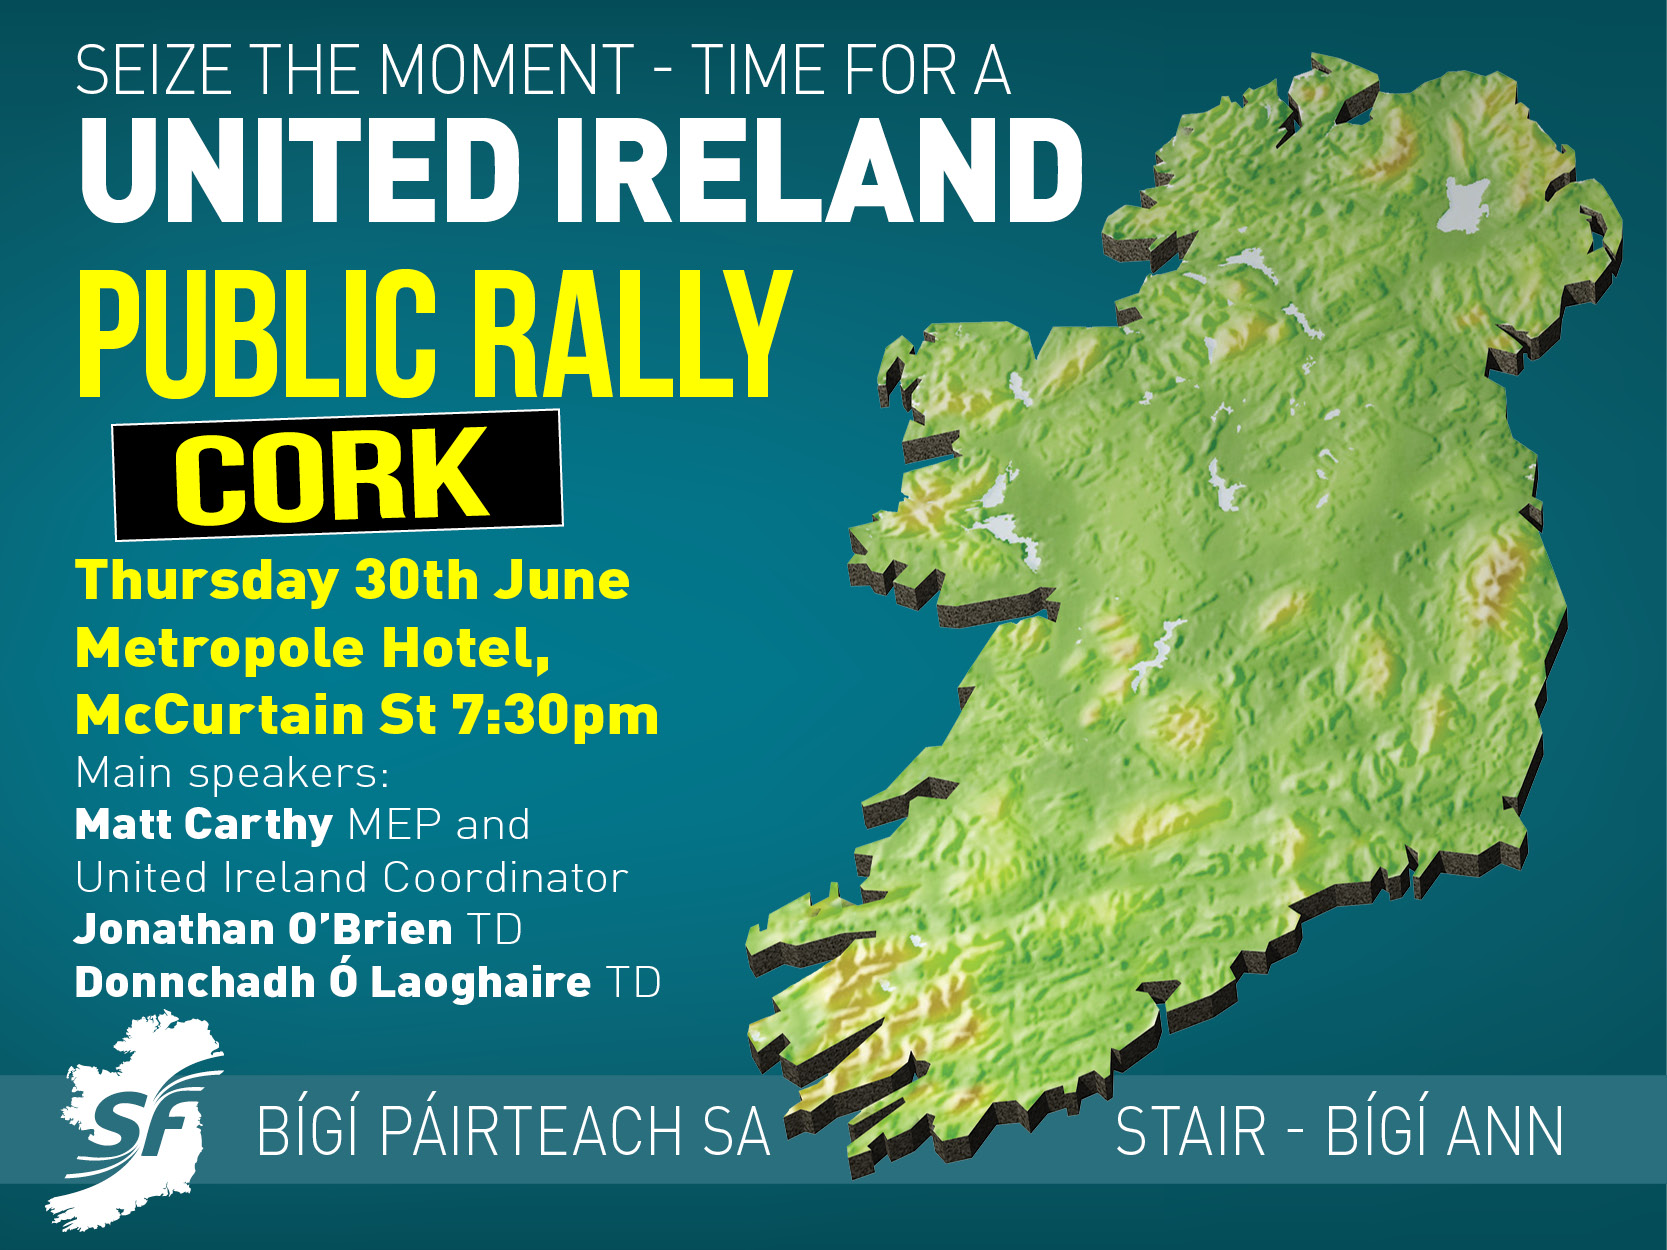 Sinn Féin in Cork to hold 'Time for a United Ireland' public meeting following Brexit result